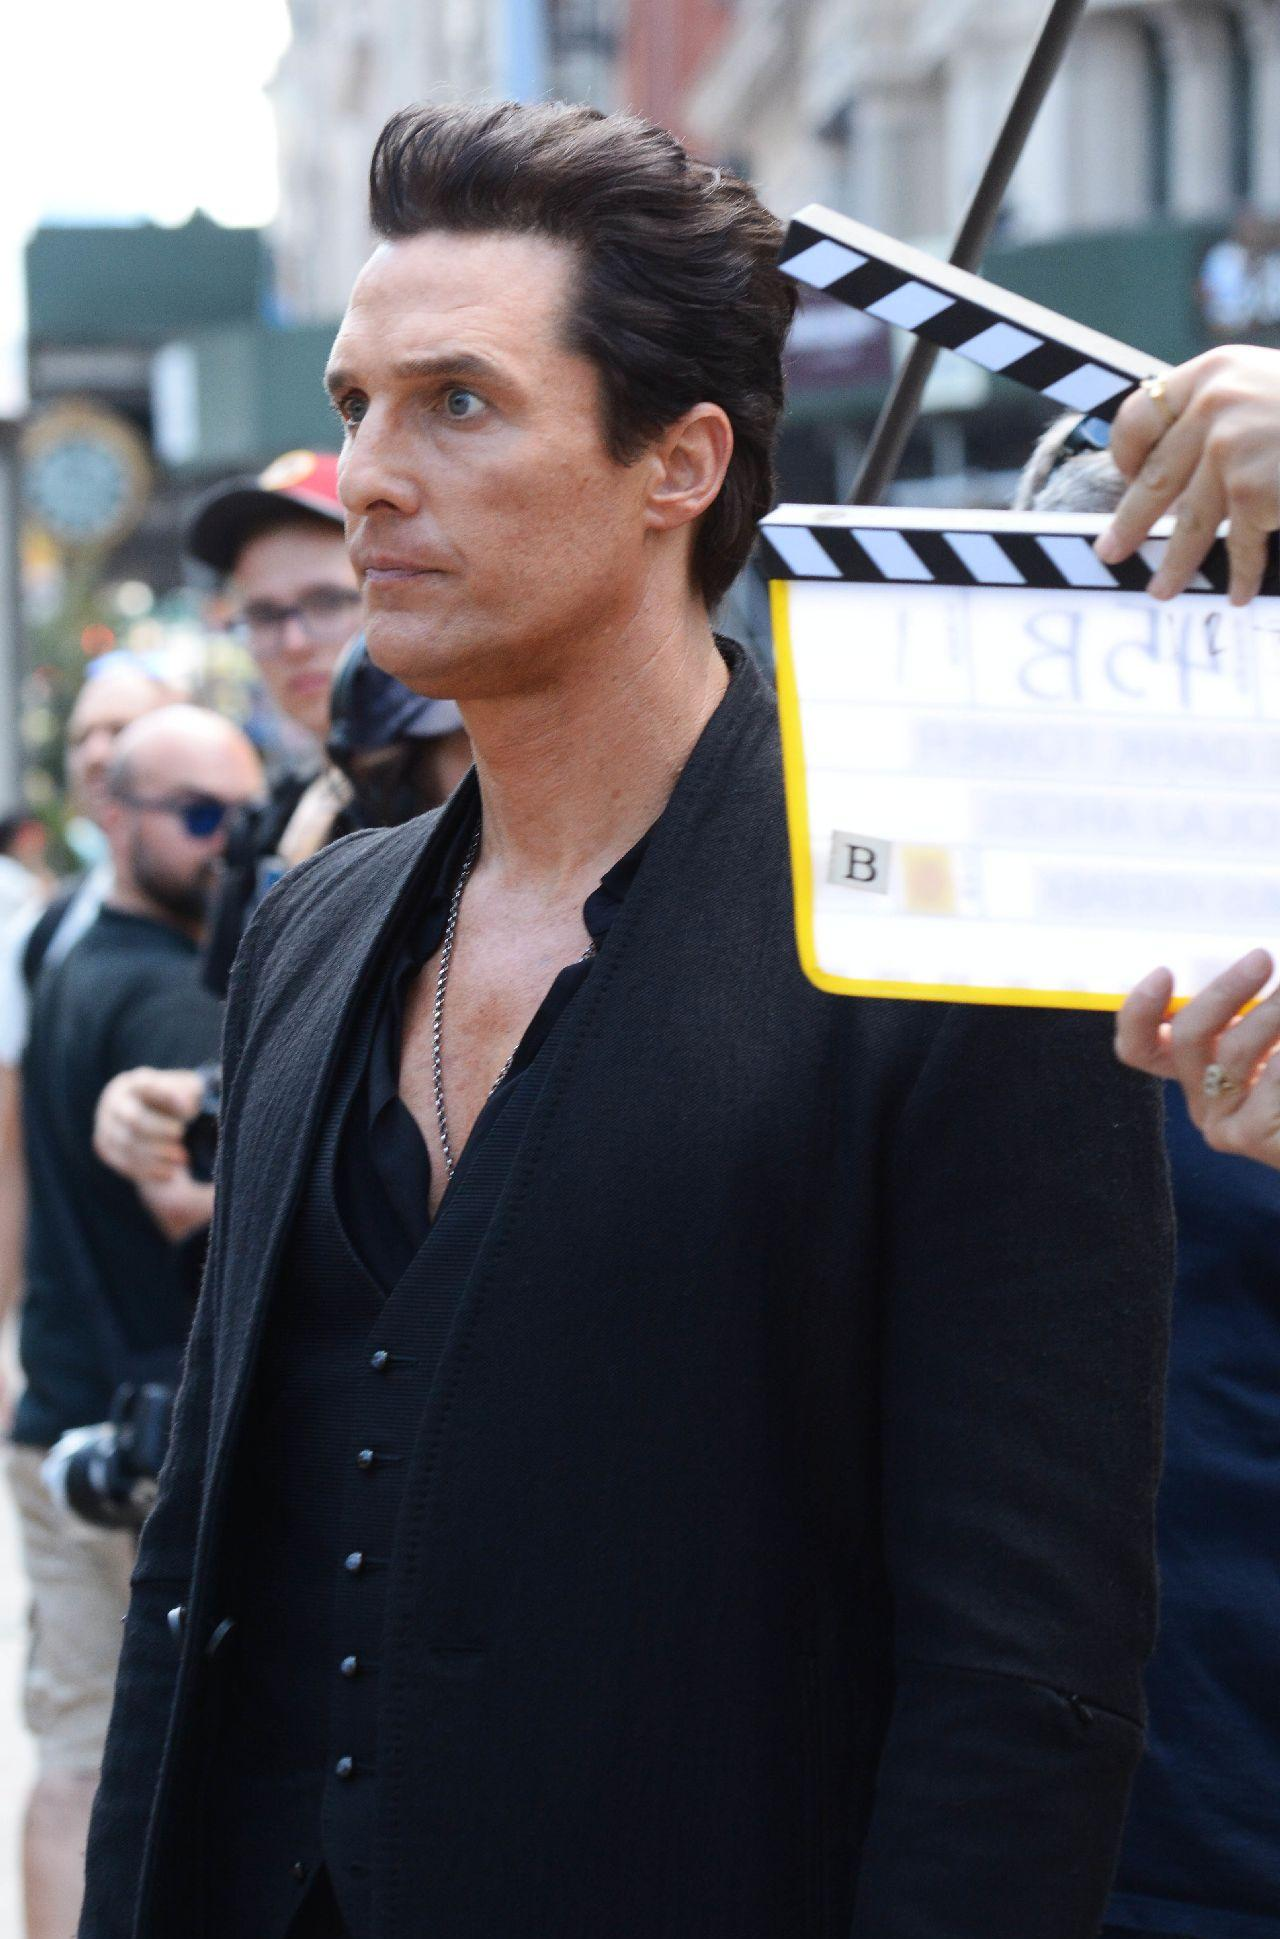 On the set of The Dark Tower in NYC Featuring: Matthew McConaughey Where: NYC, New York, United States When: 01 Jul 2016 Credit: Patricia Schlein/WENN.com